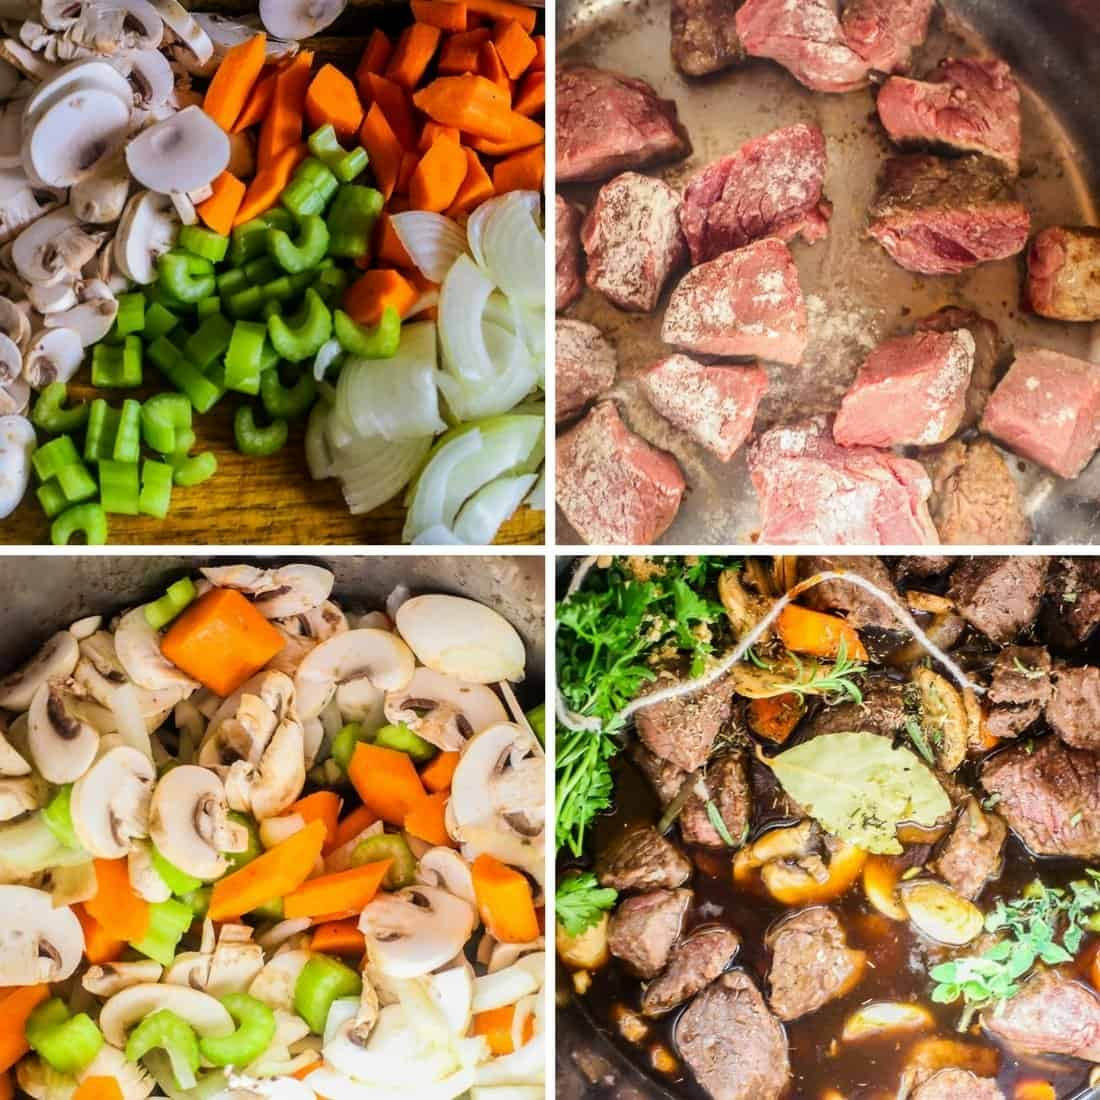 beef mushroom guinness soup is made with tasty veggies. The beef is browned and Guinness Stout is poured over the meat and veggies. The ingredients can be braised, slow cooked, or made in the Instant Pot.